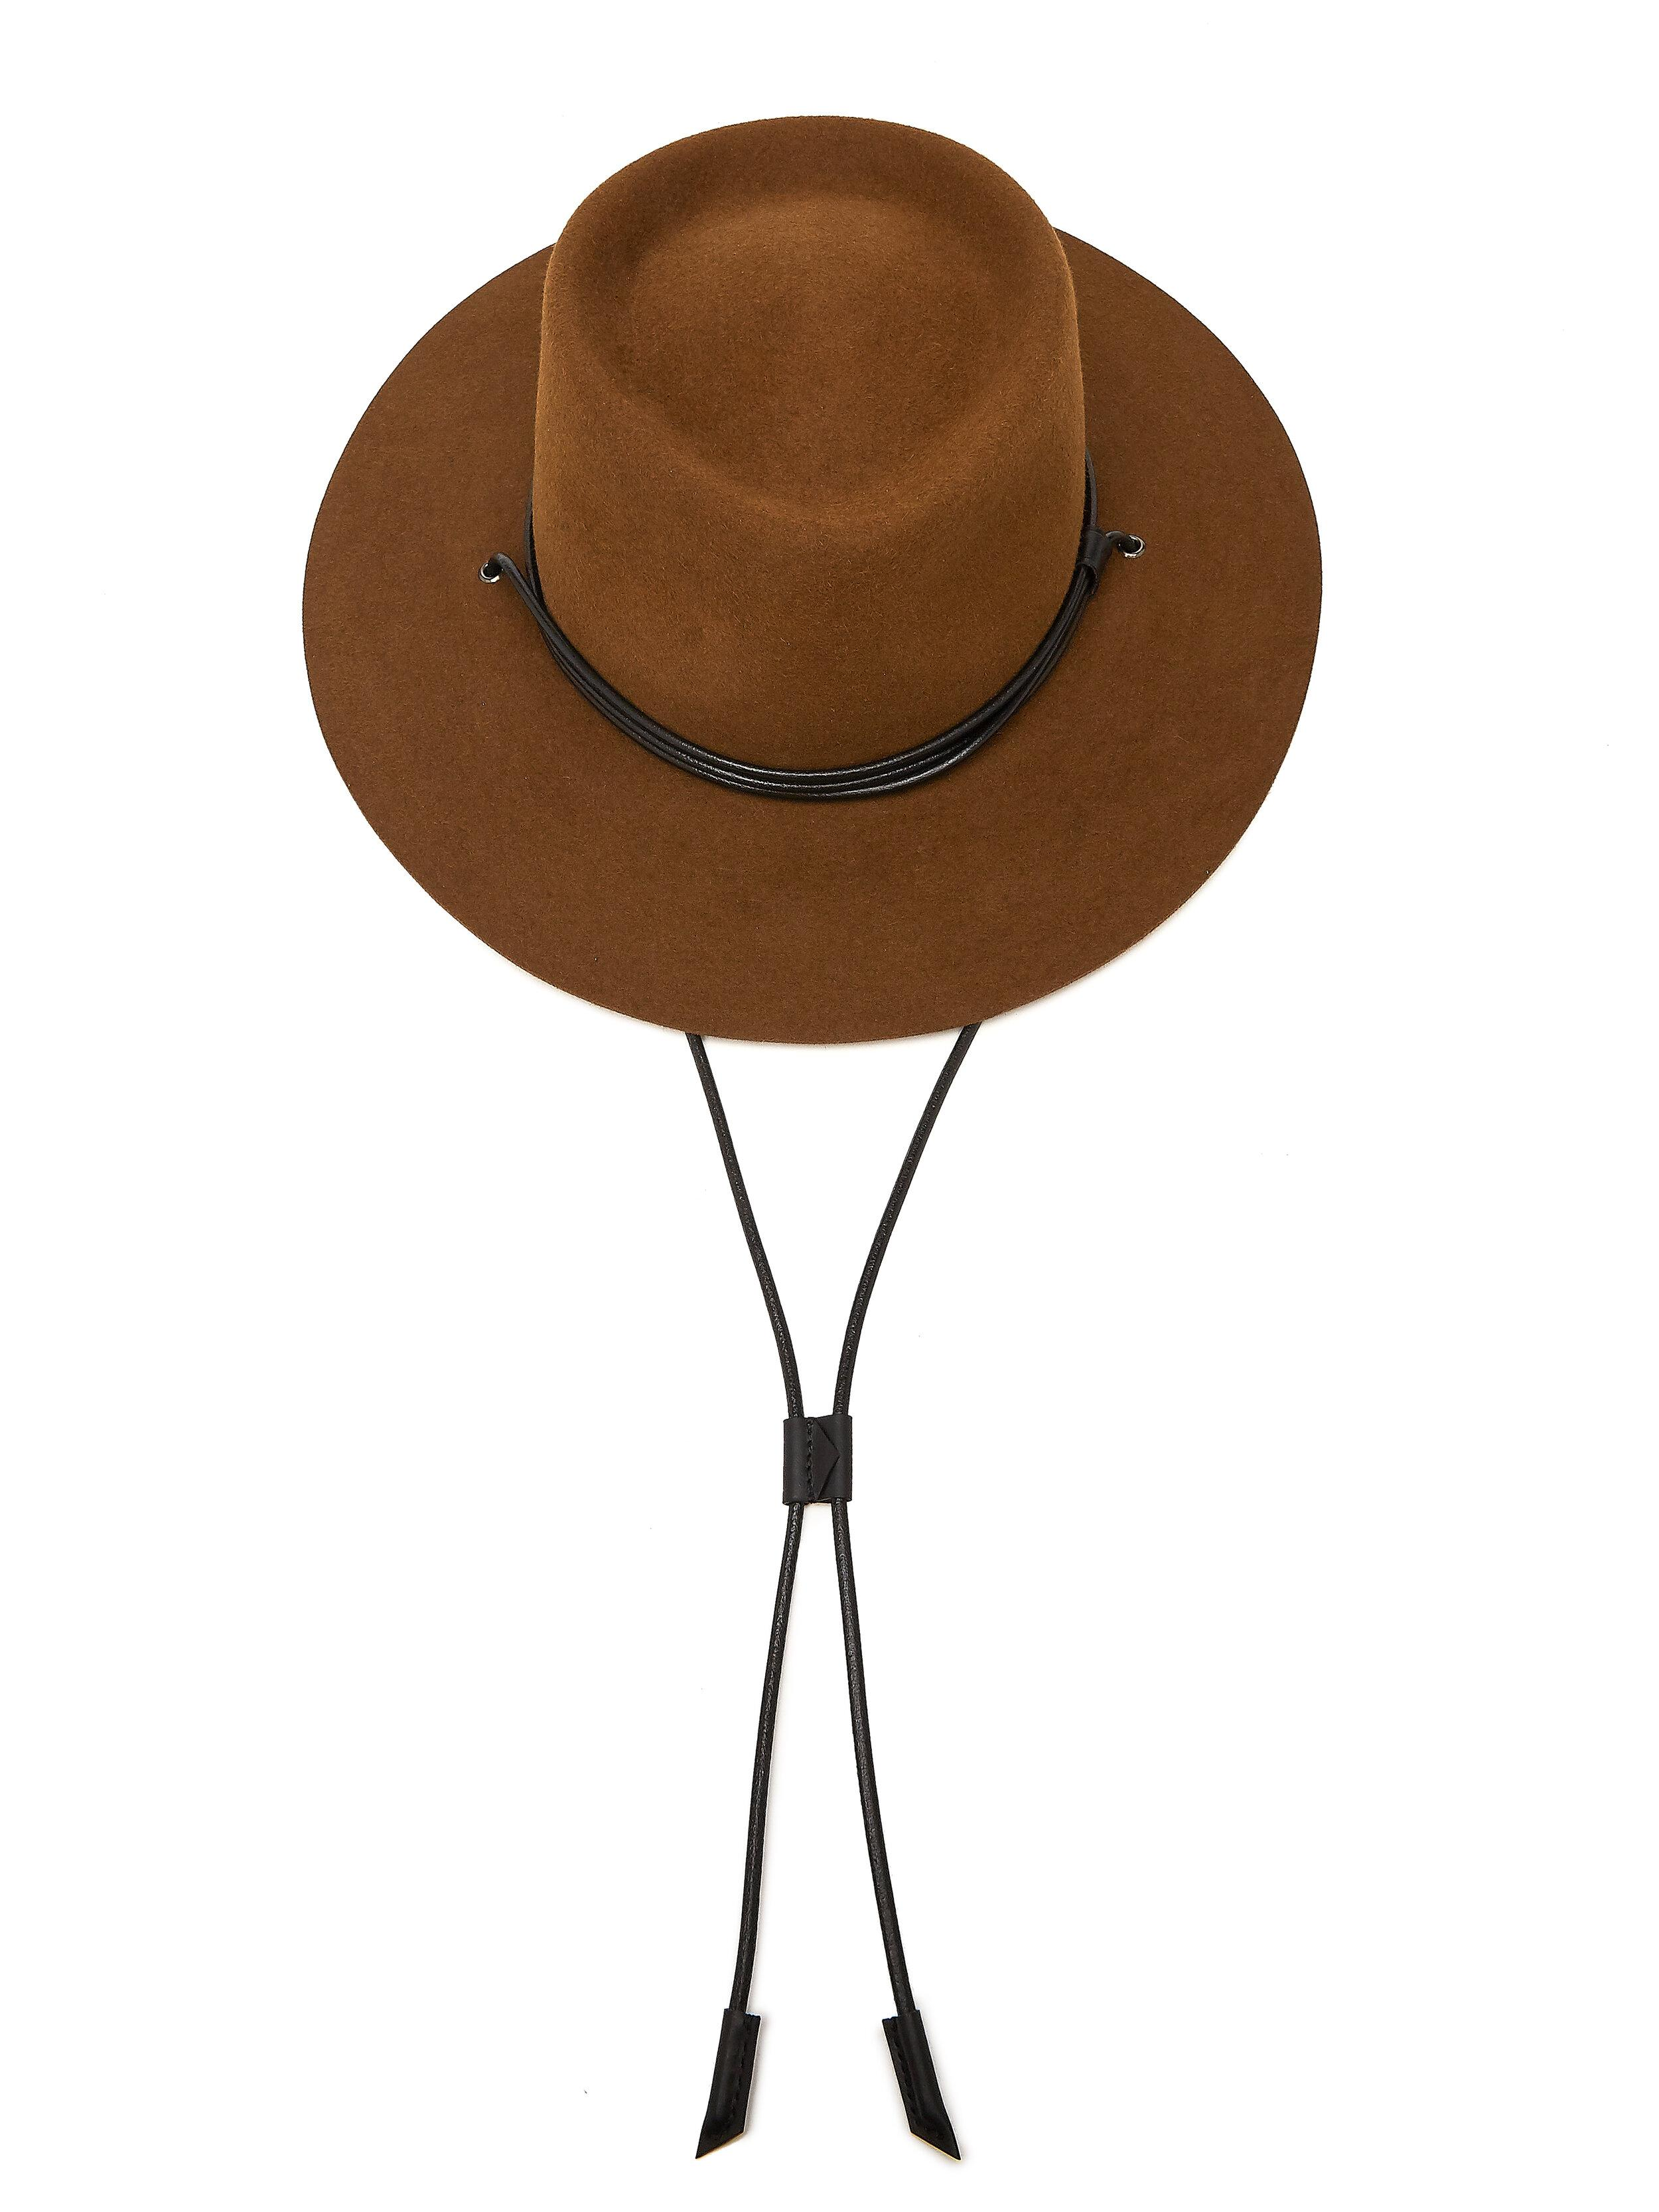 Doria1905 for ODP O'Keeffe Hat - Tobacco 1